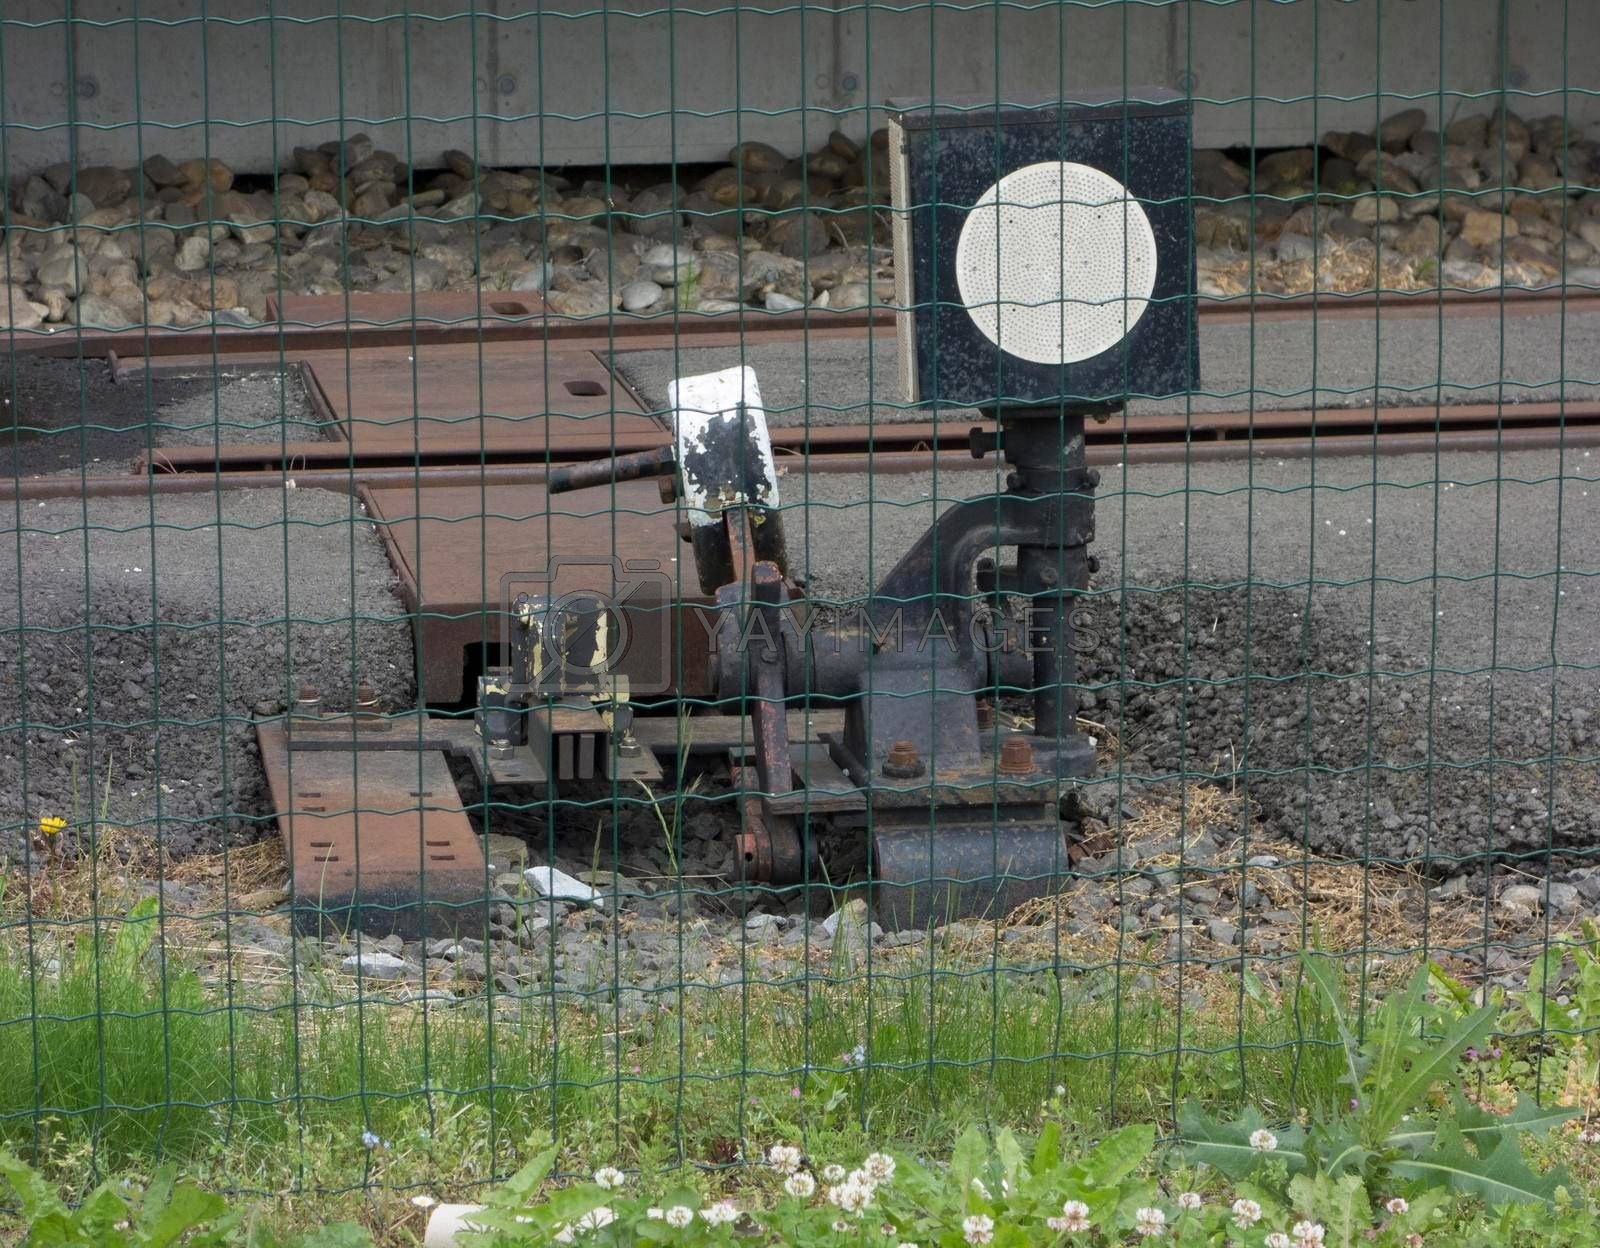 switch or track switch for rail in railroad and train traffic